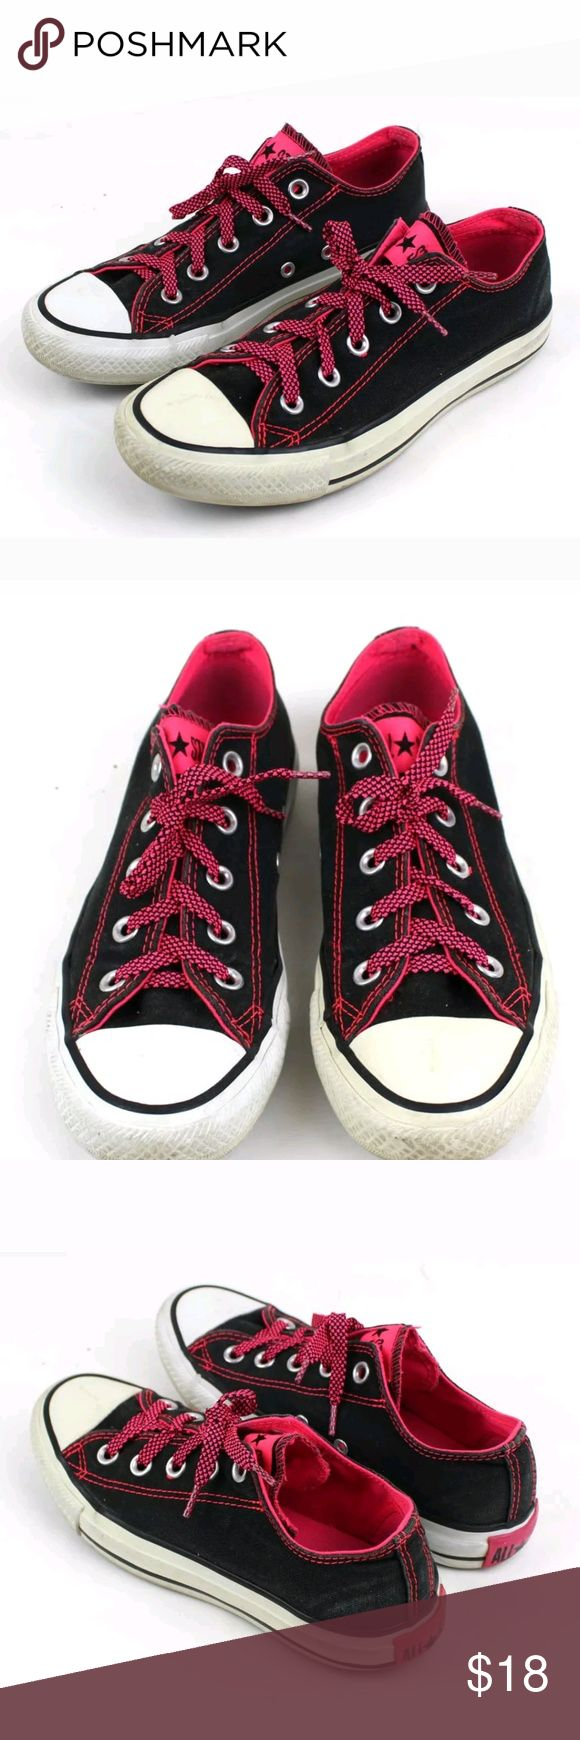 Converse All Star Low Top Sneakers Converse All Star Womens Low top Sneakers .  Size 6  Black Canvas with Pink Accents & Stitching  Sneakers are in good condition. Soles have lots of life left -- only flaw is one shoe seems to be more faded than the other. Converse Shoes Sneakers